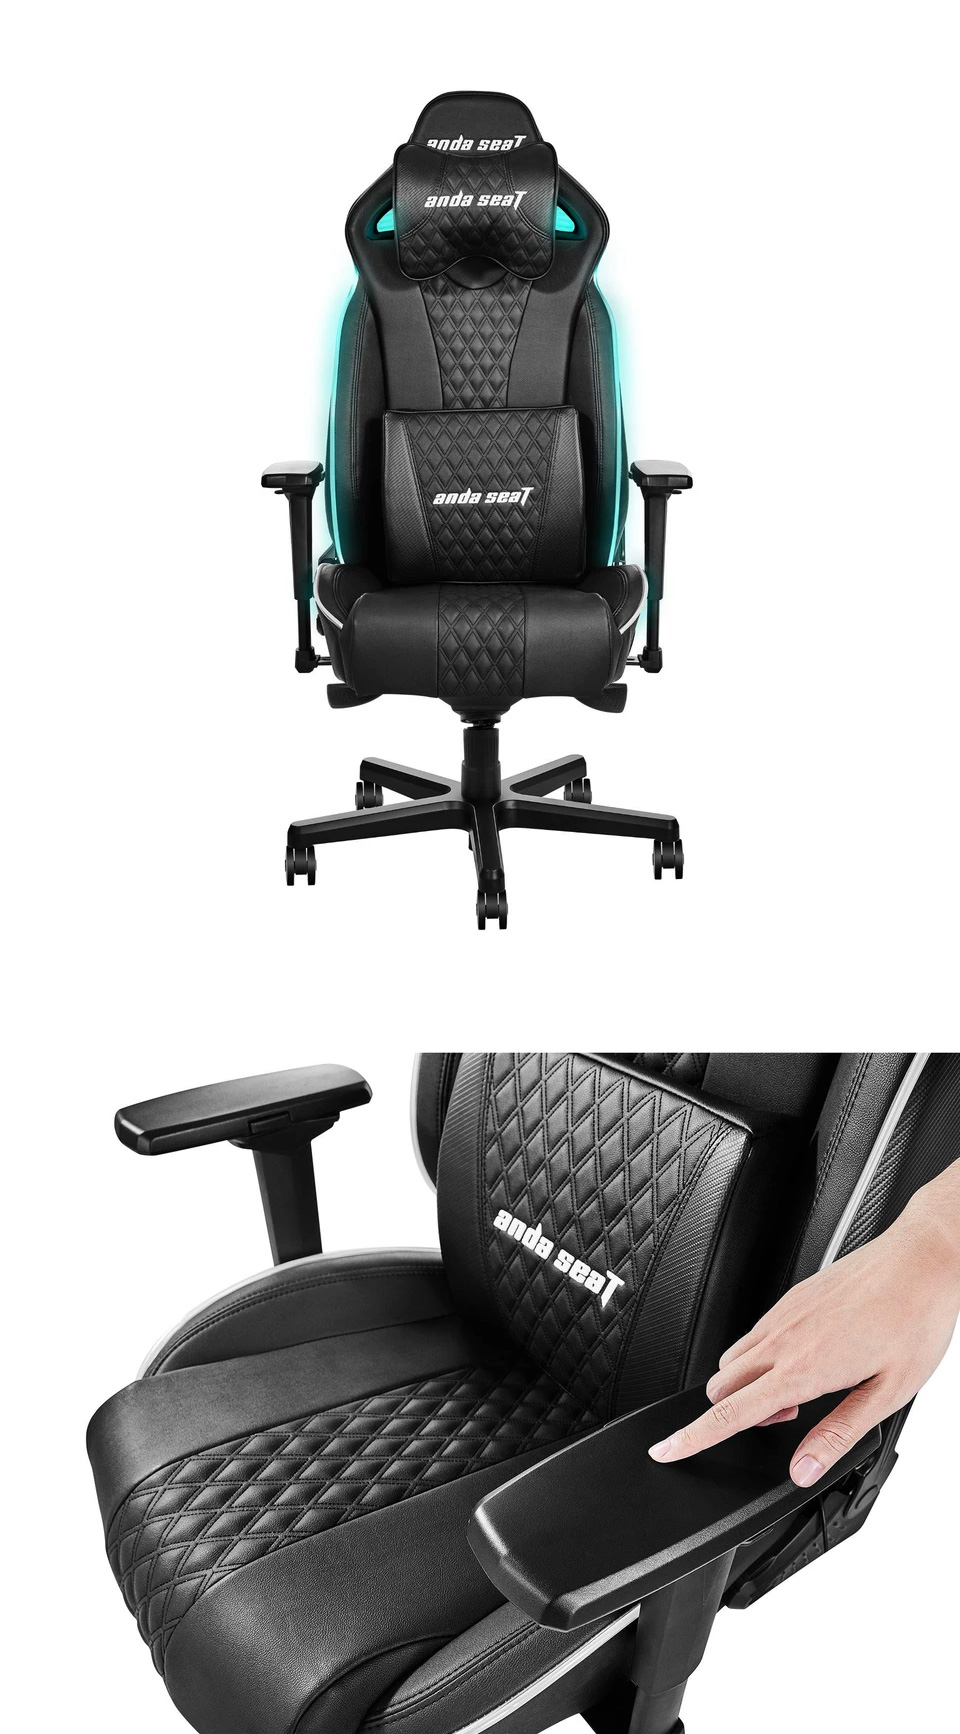 Anda Seat AD17-01 RGB Large Gaming Chair Black product